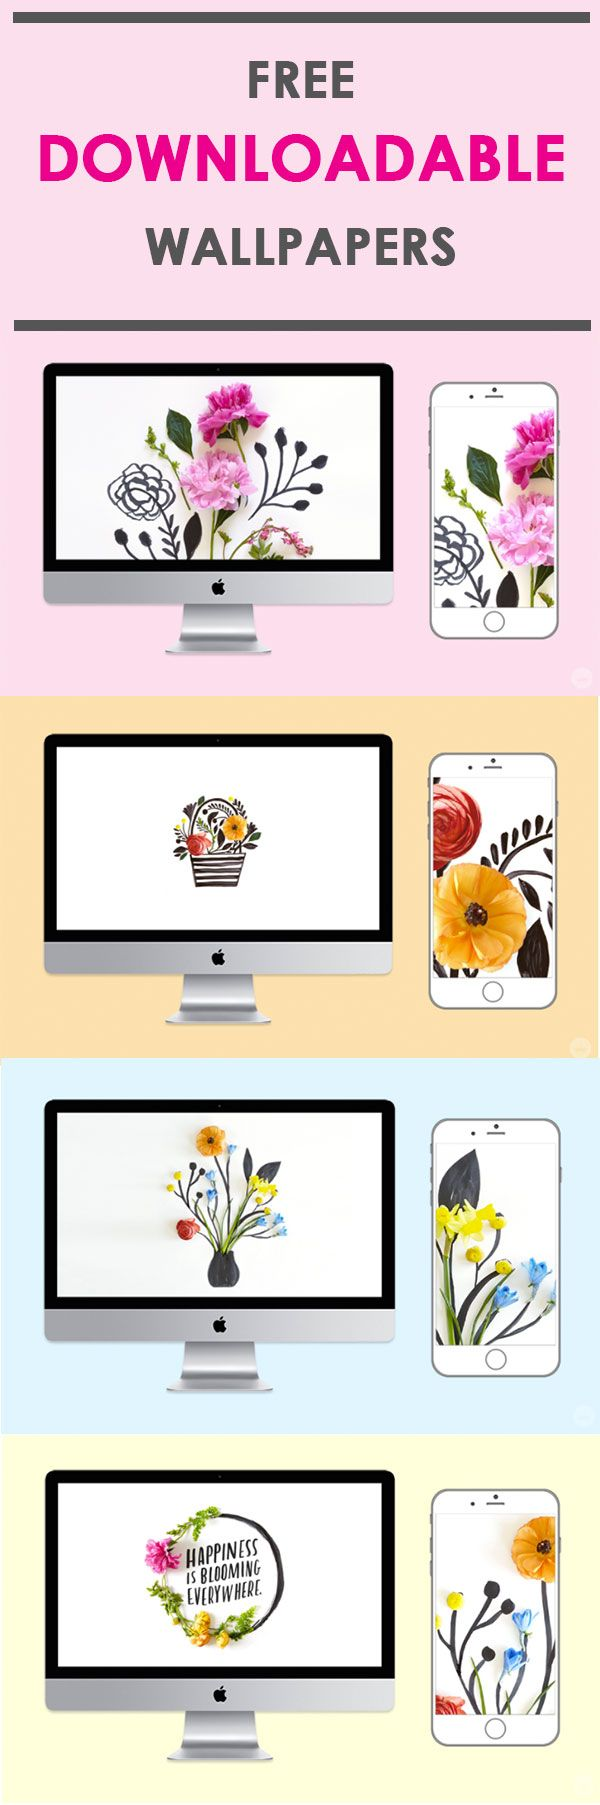 Bring more fresh florals into your life with these beautiful FREE wallpapers from Think.Make.Share! These are perfect for your computer or phone to brighten your day.